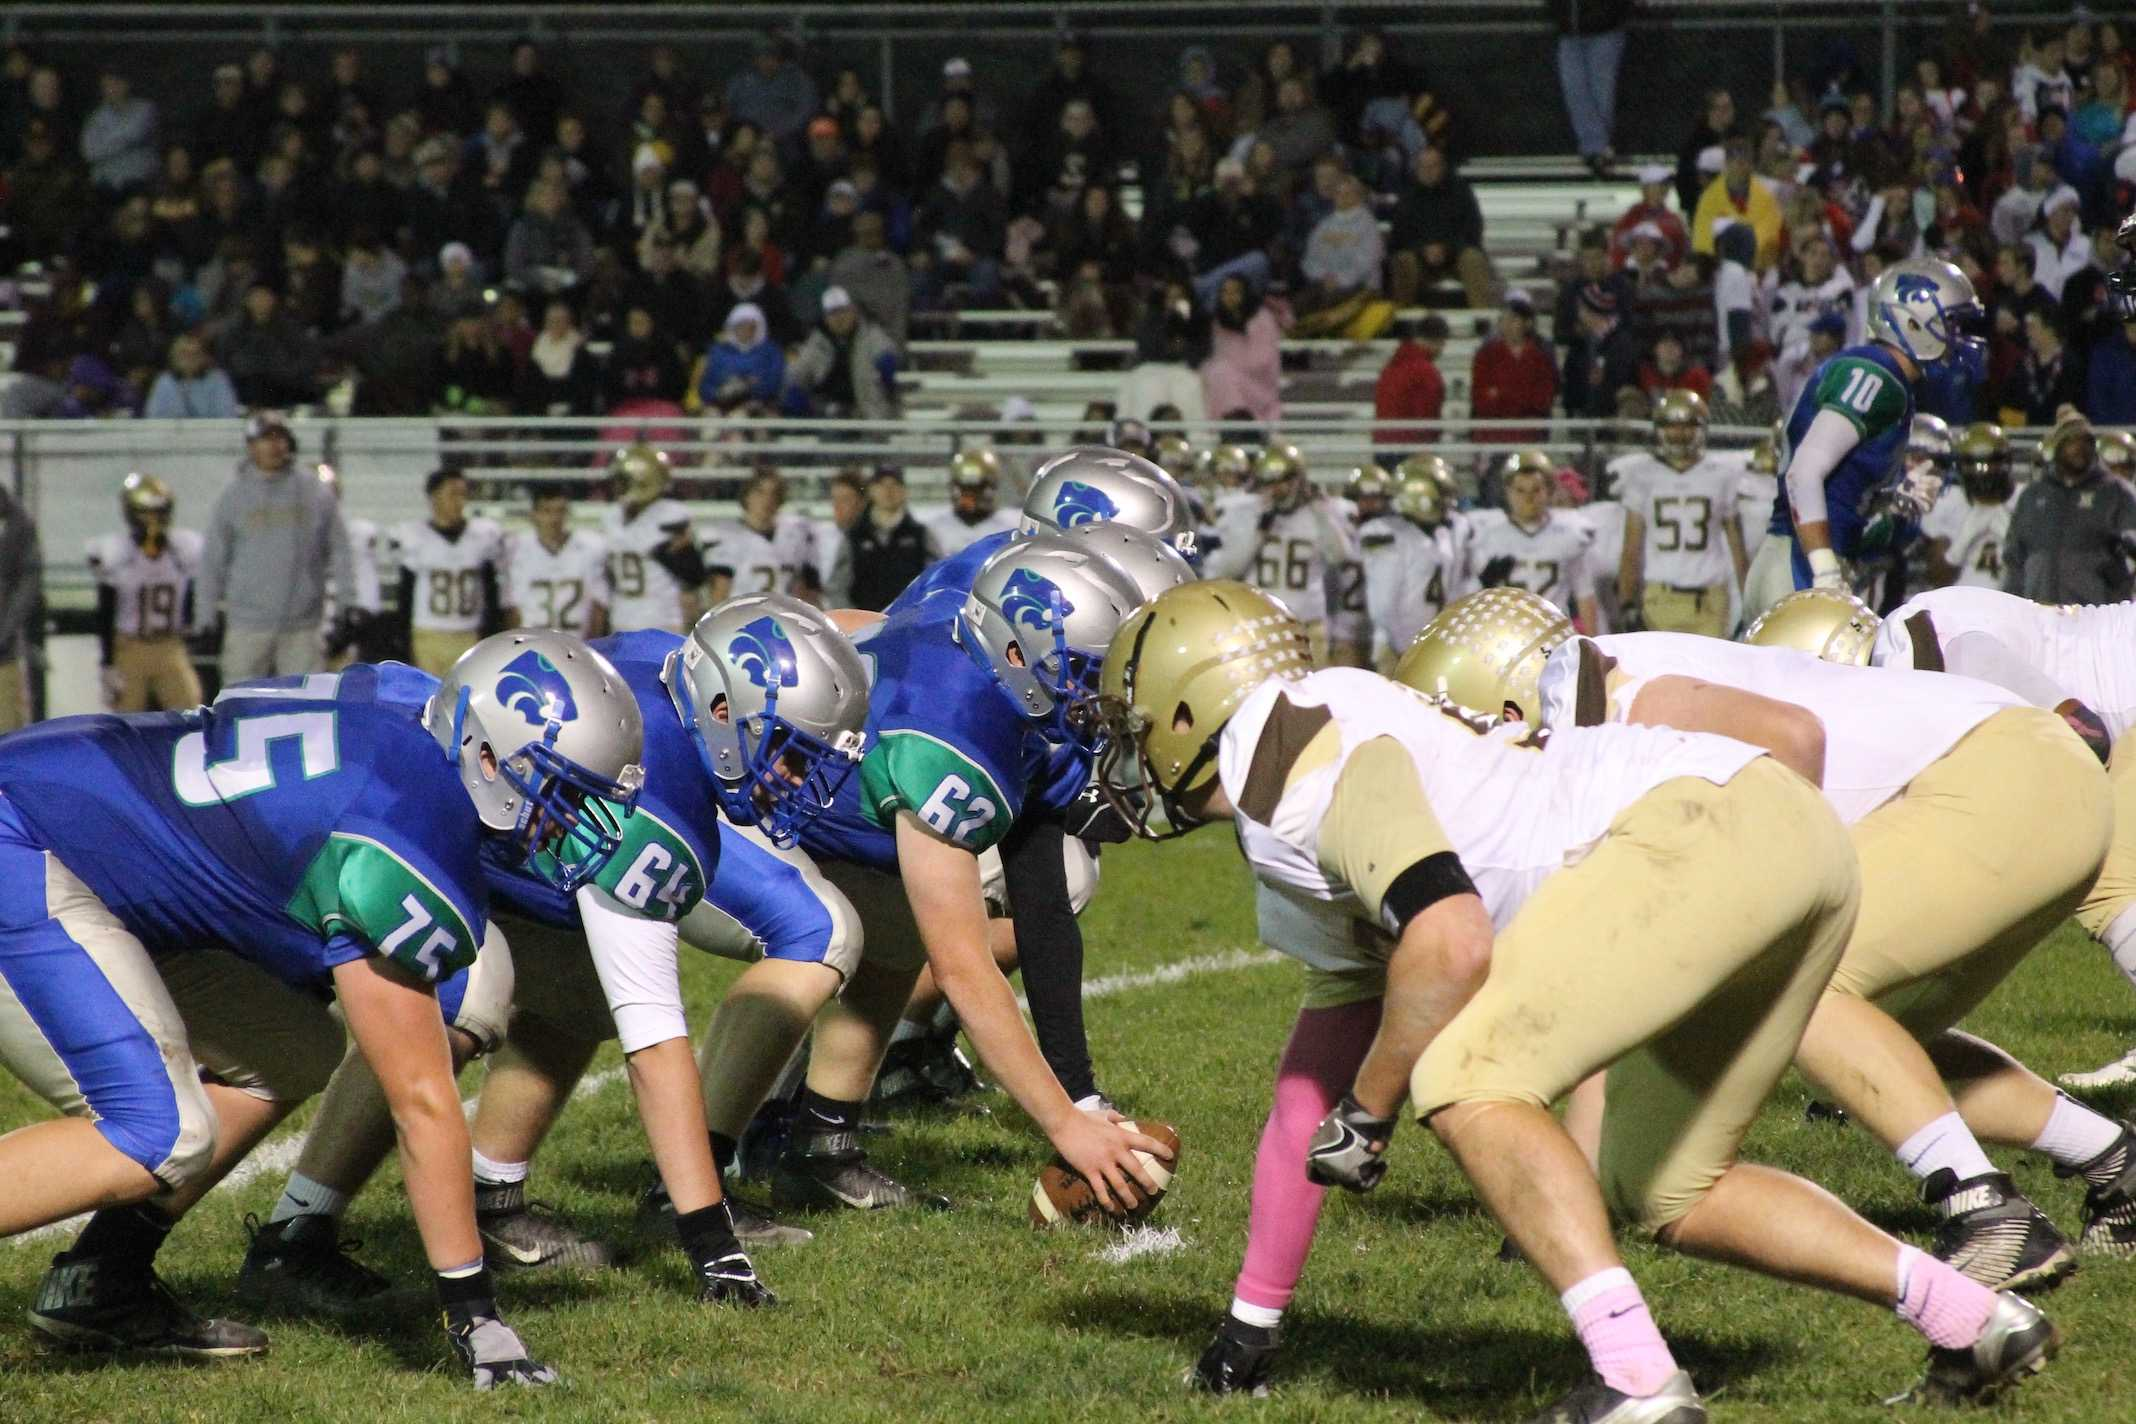 Eagan's offense lines up